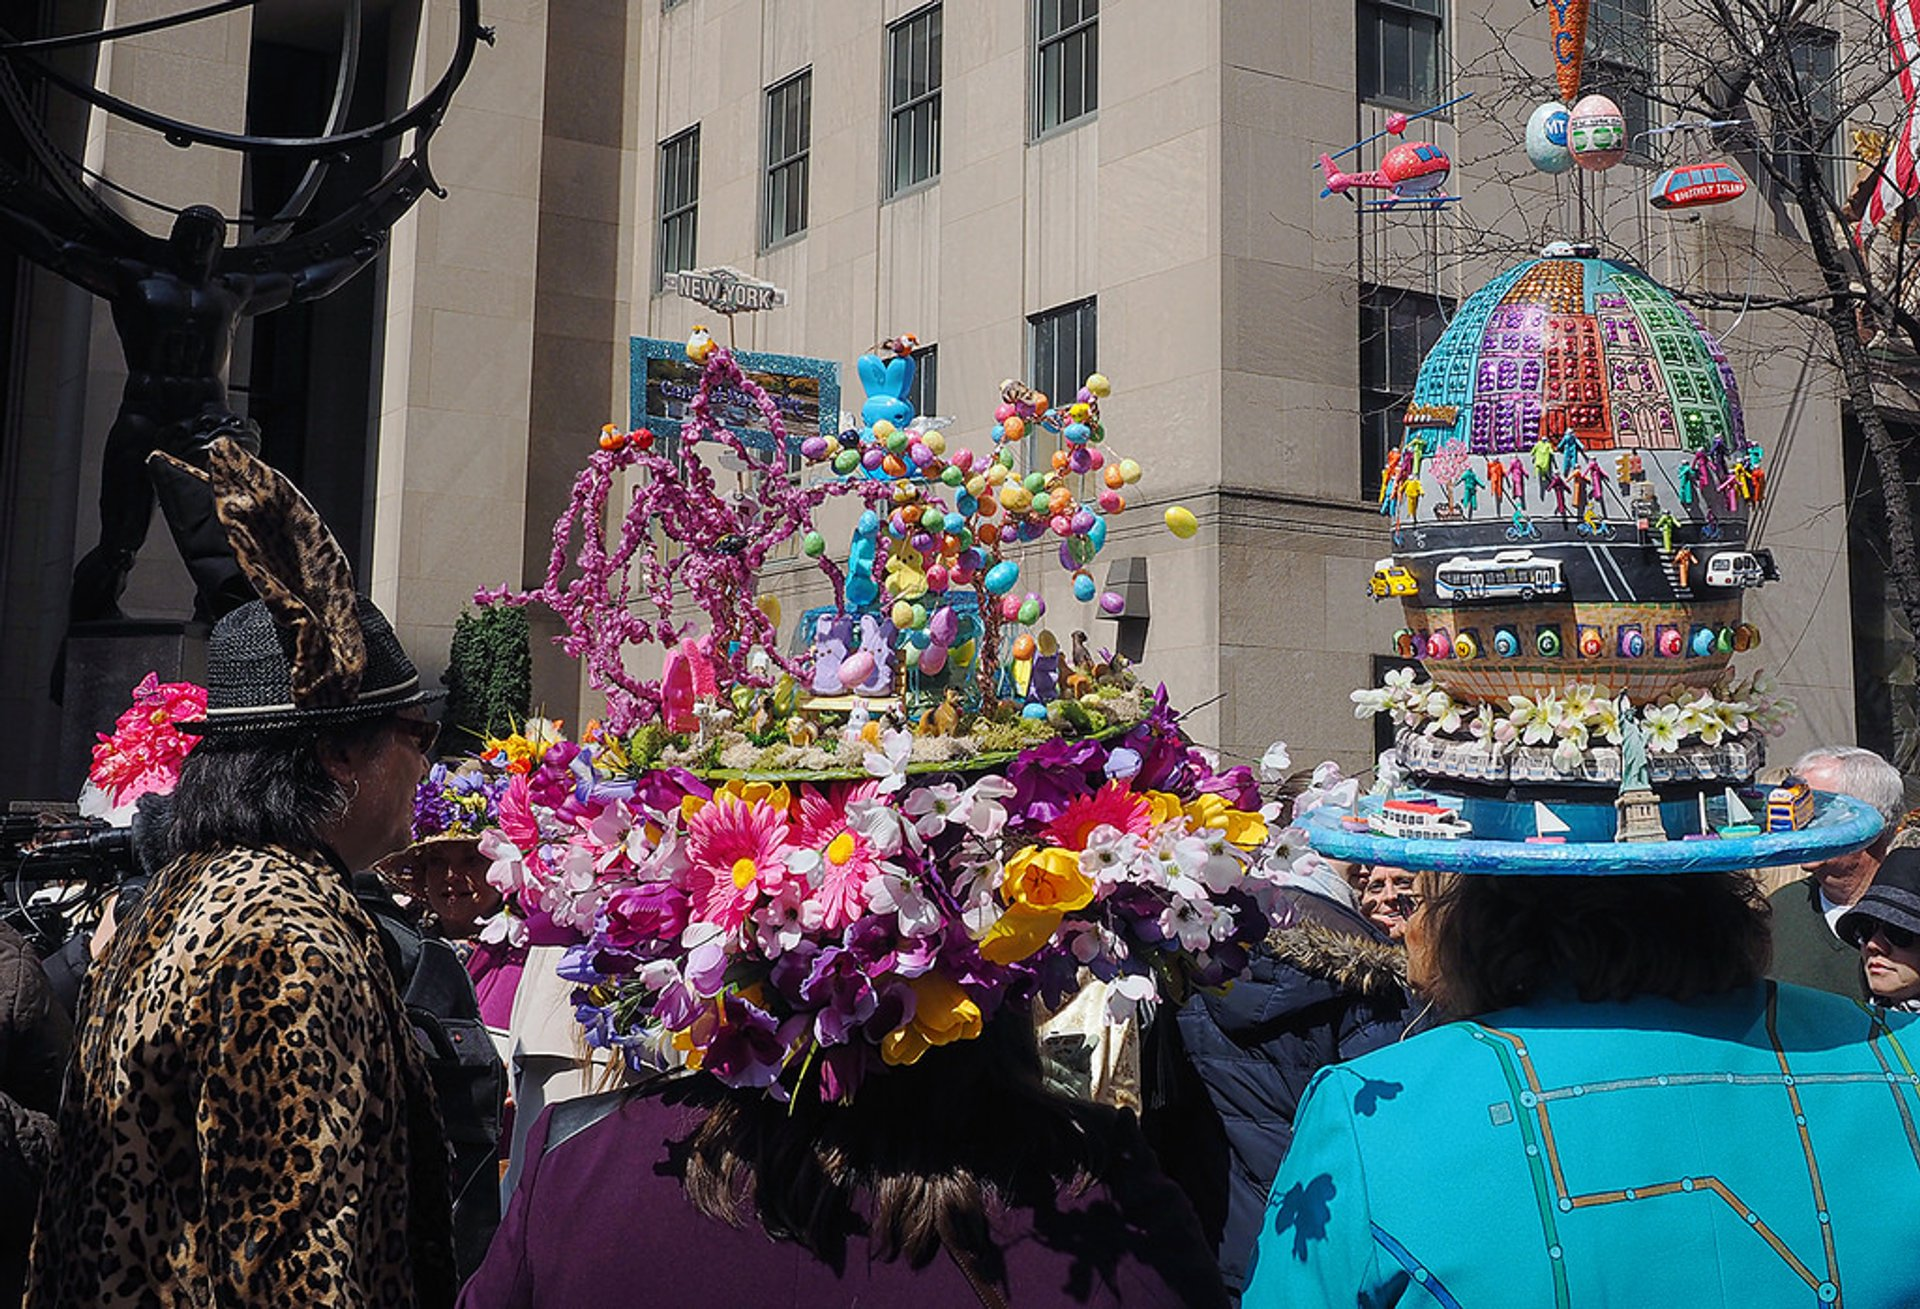 Easter Parade and Easter Bonnet Festival in New York - Best Season 2019